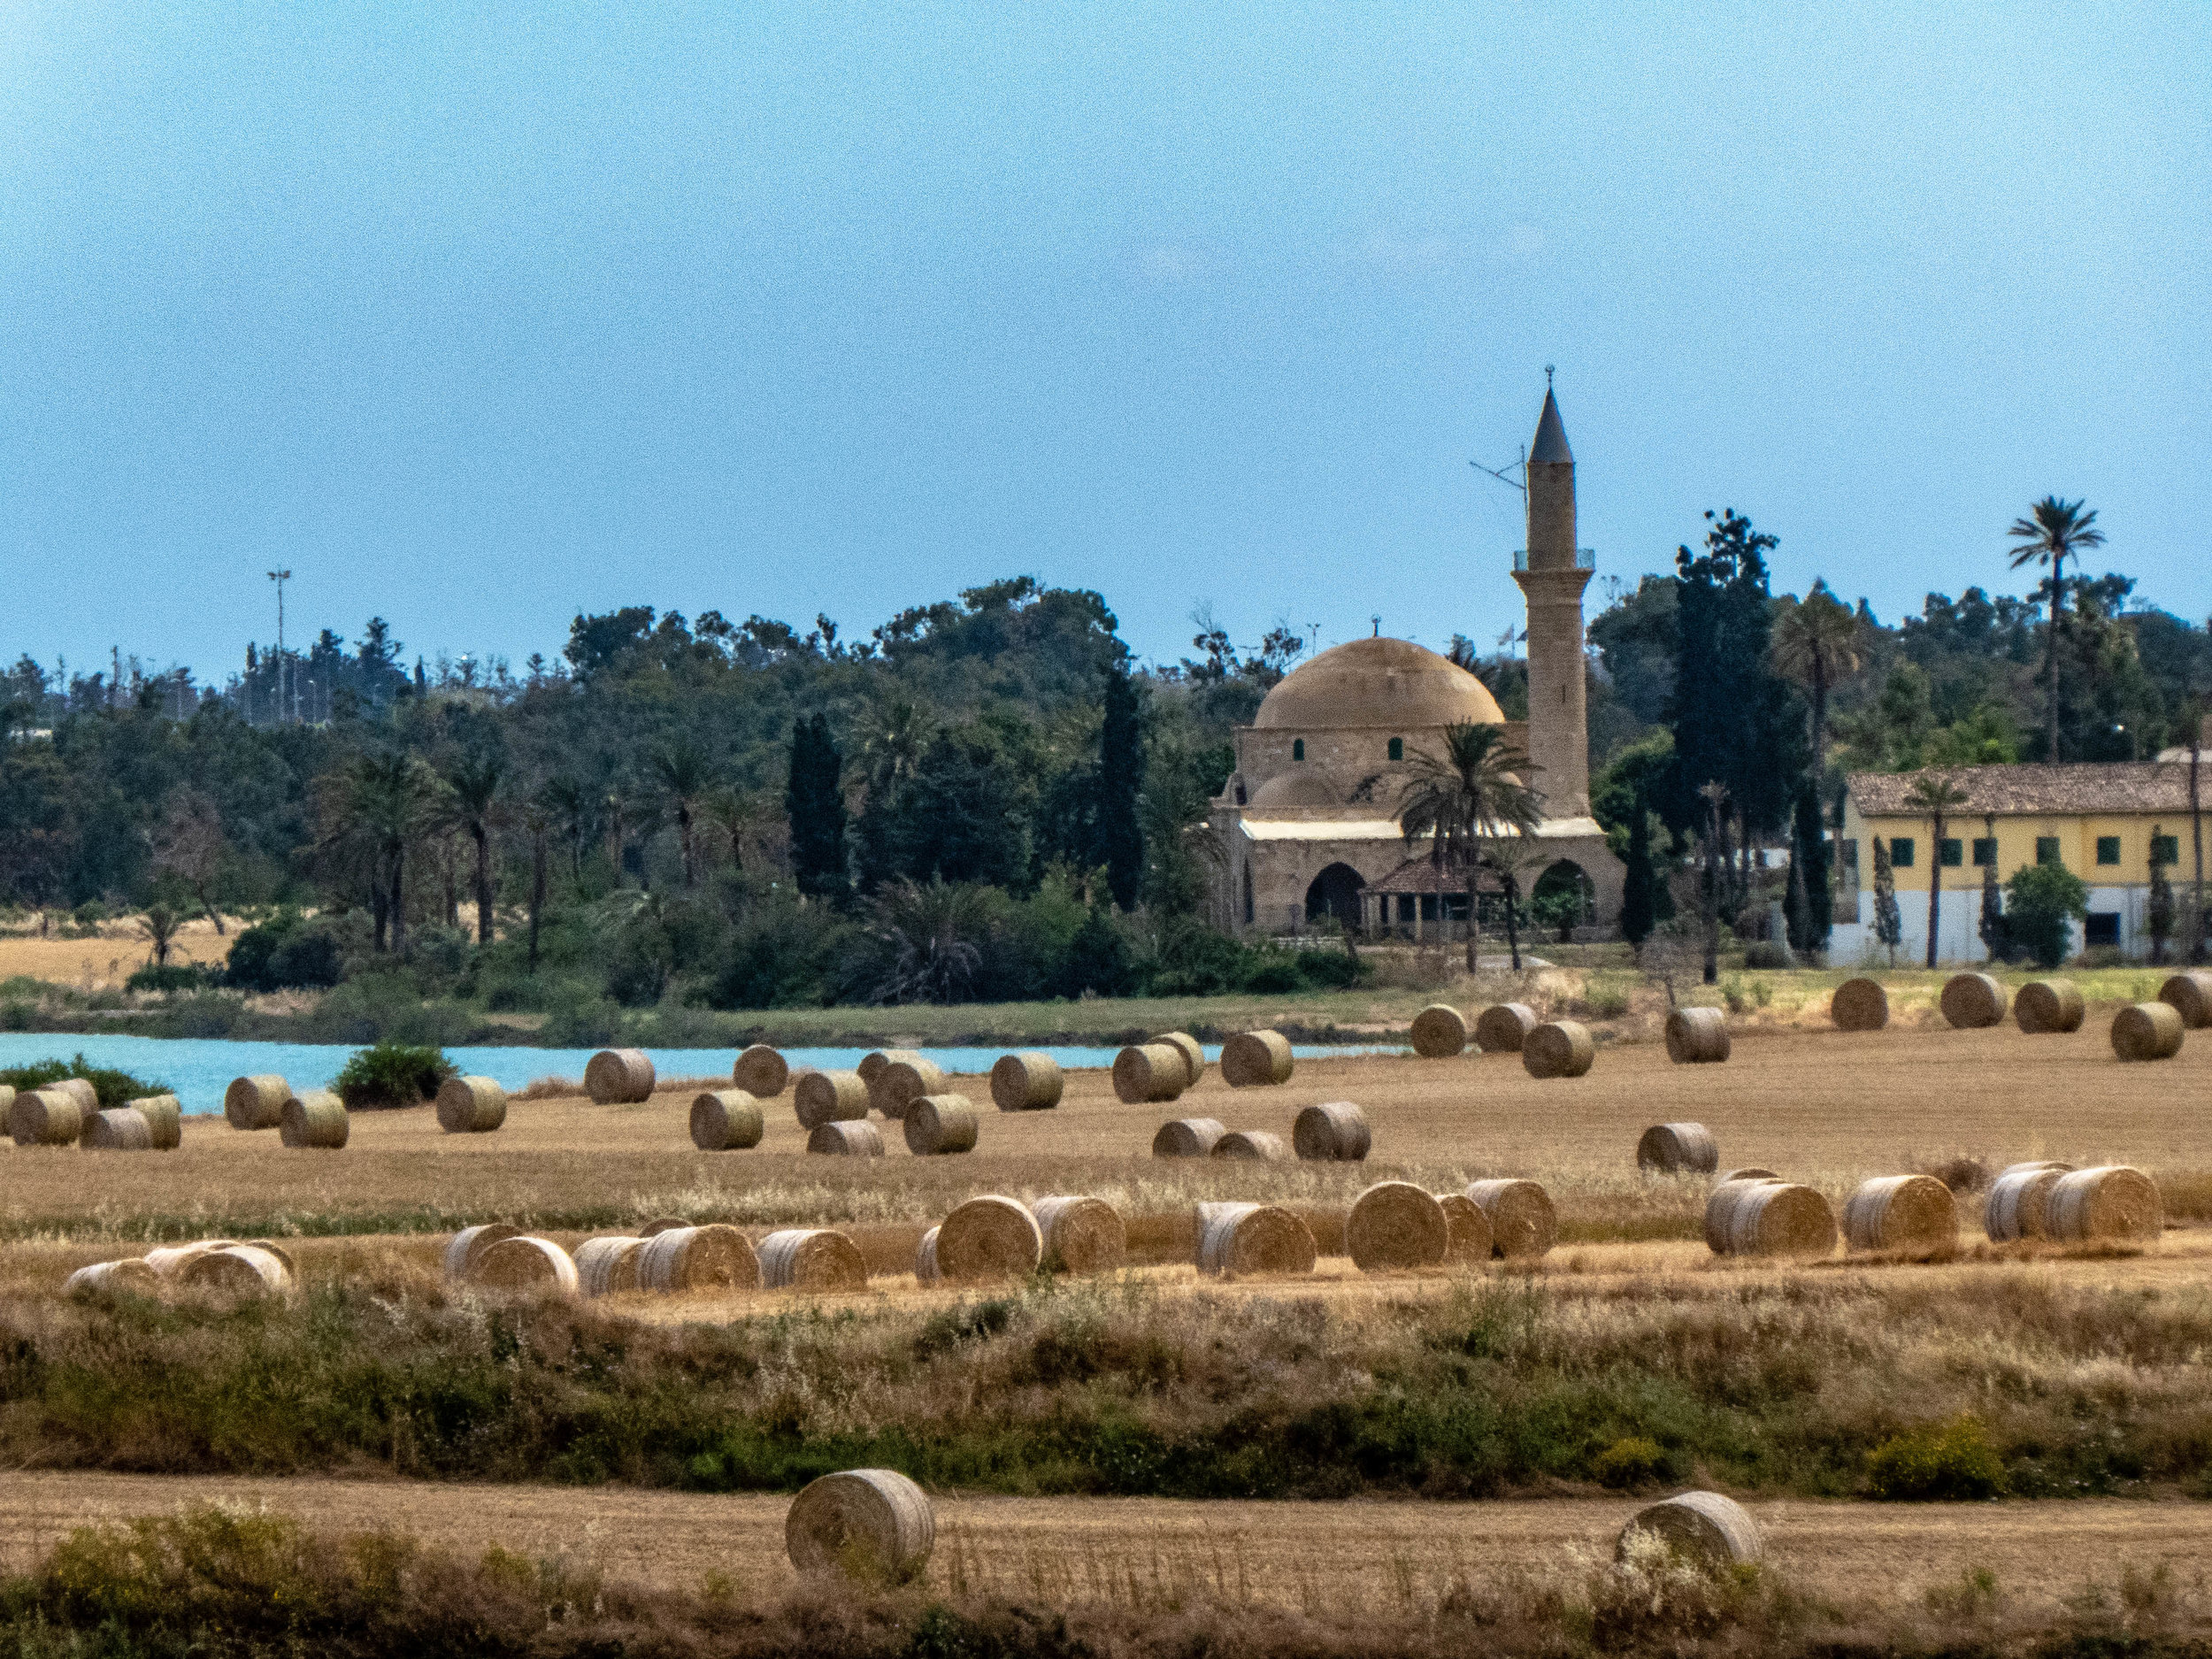 Mosque views from the farmlands